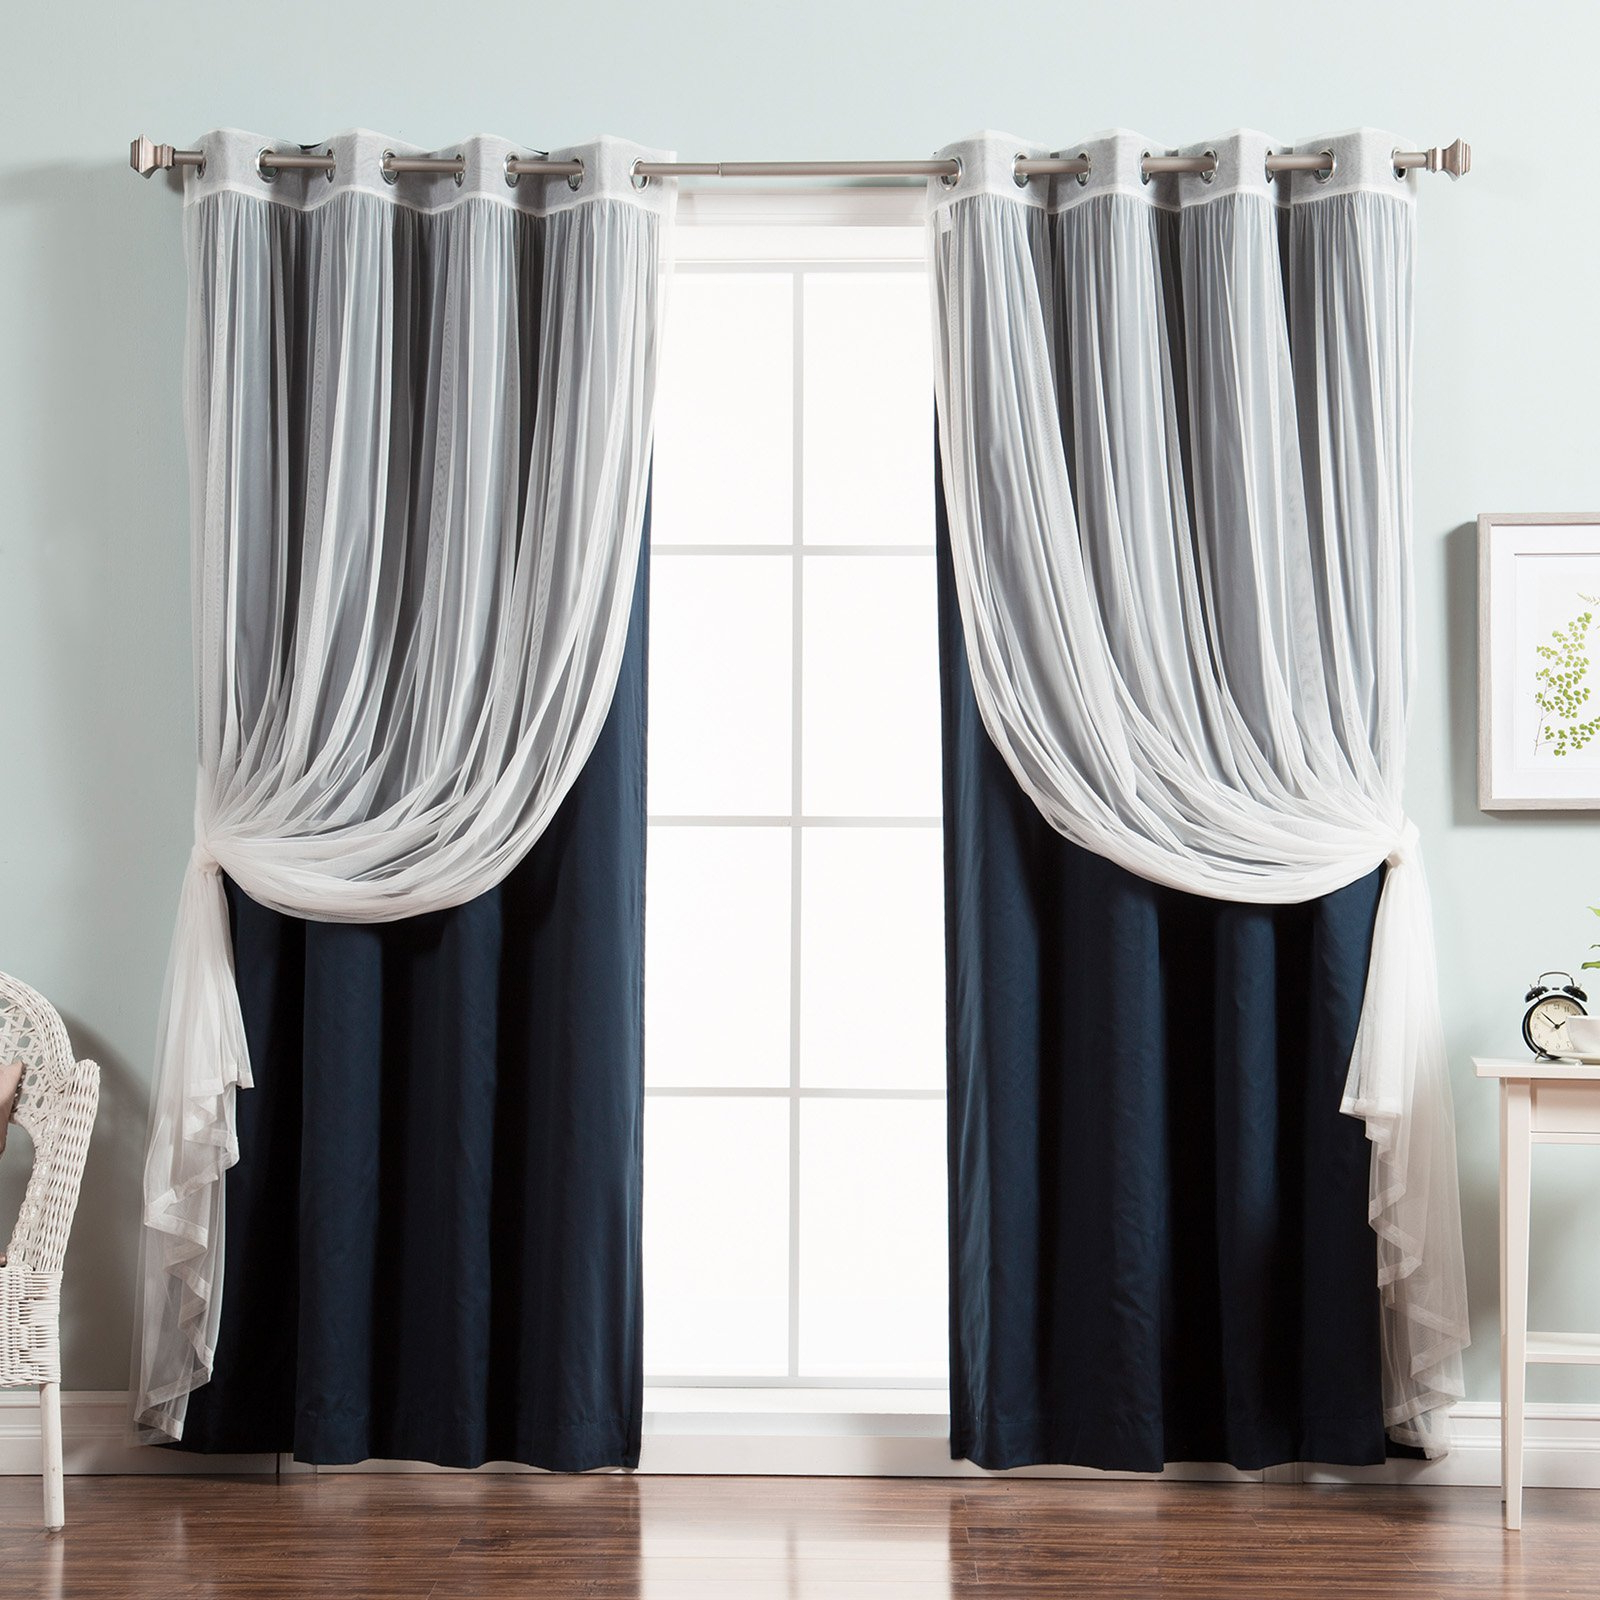 Most Up To Date Best Home Fashion Tulle Lace And Solid Cotton Blackout Mix & Match Curtain Panels – Set Of 4 Regarding Solid Cotton Curtain Panels (View 19 of 20)